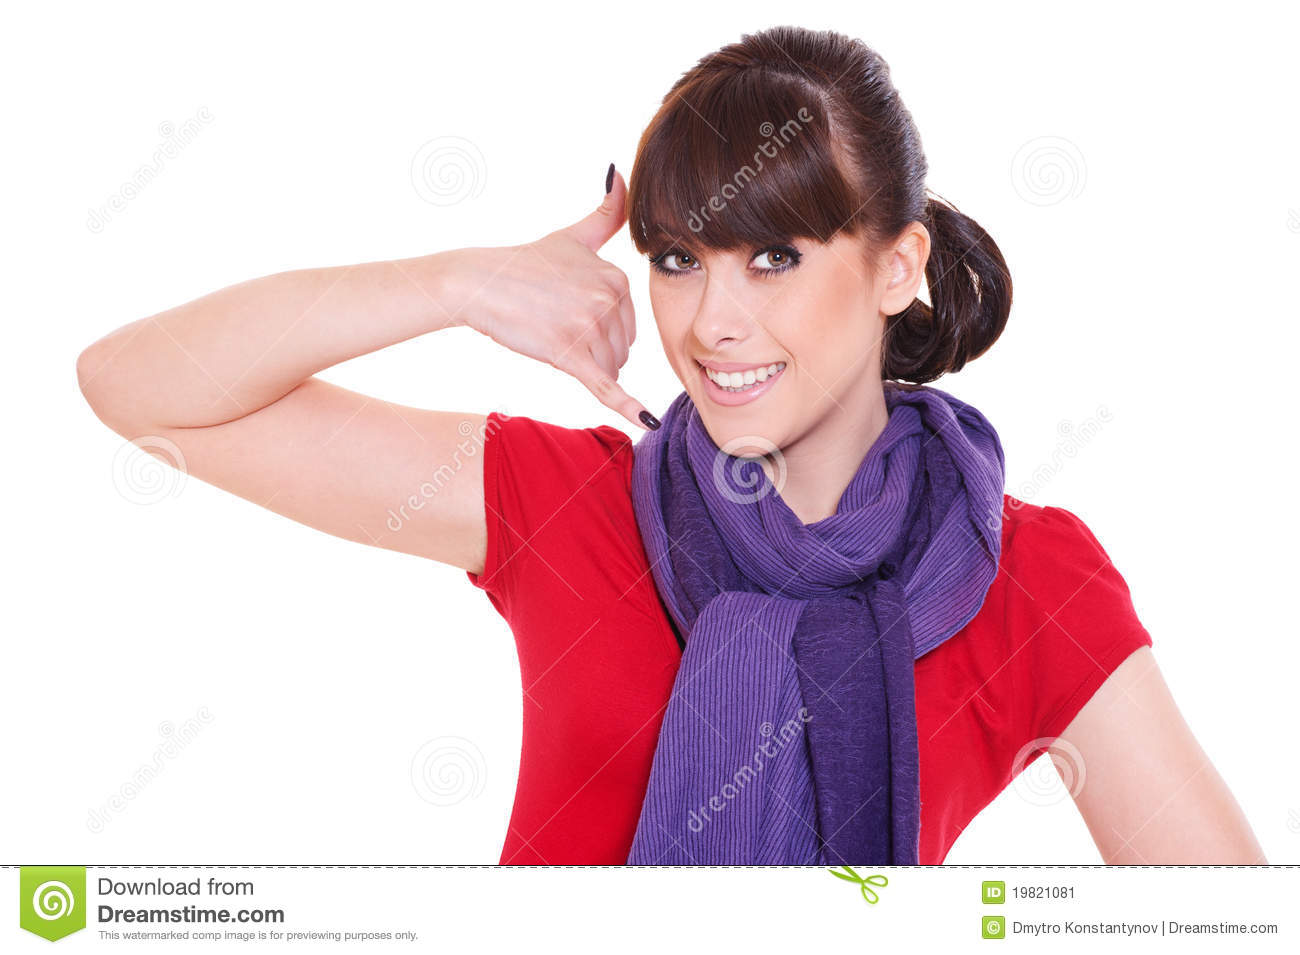 Smiley Woman Making Call Me Gesture Stock Image - Image ...